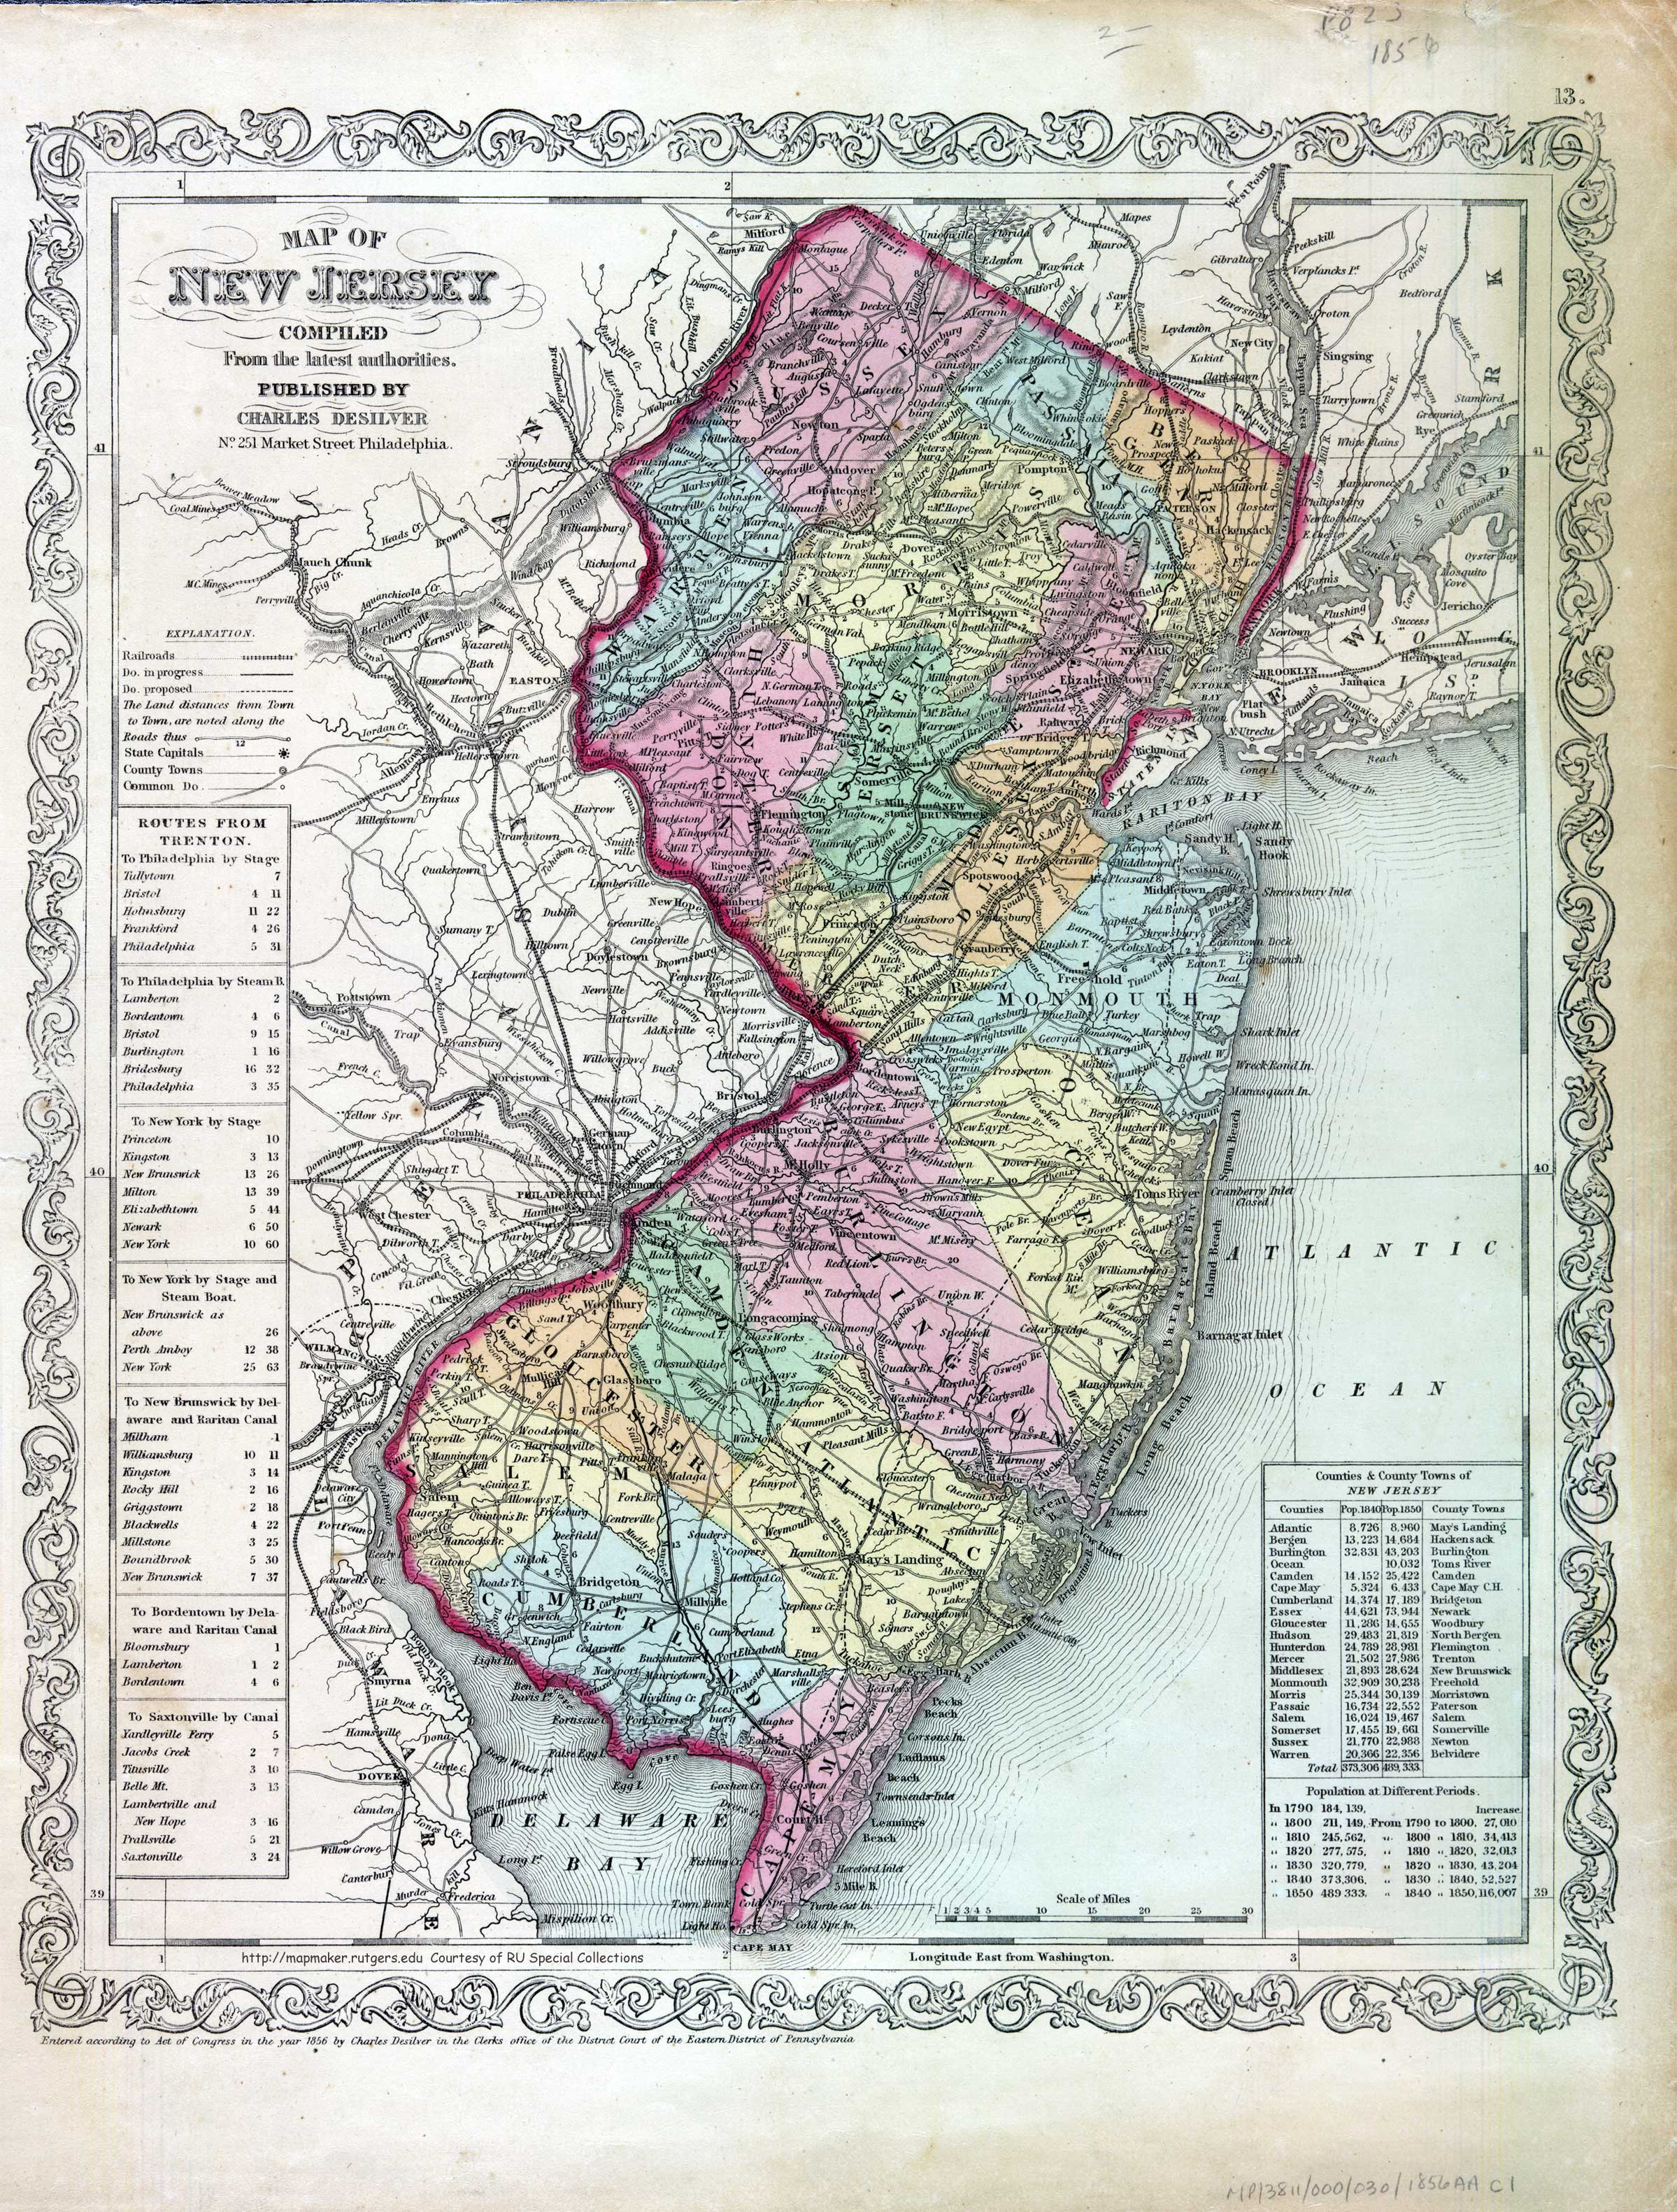 New Jersey Historical Maps